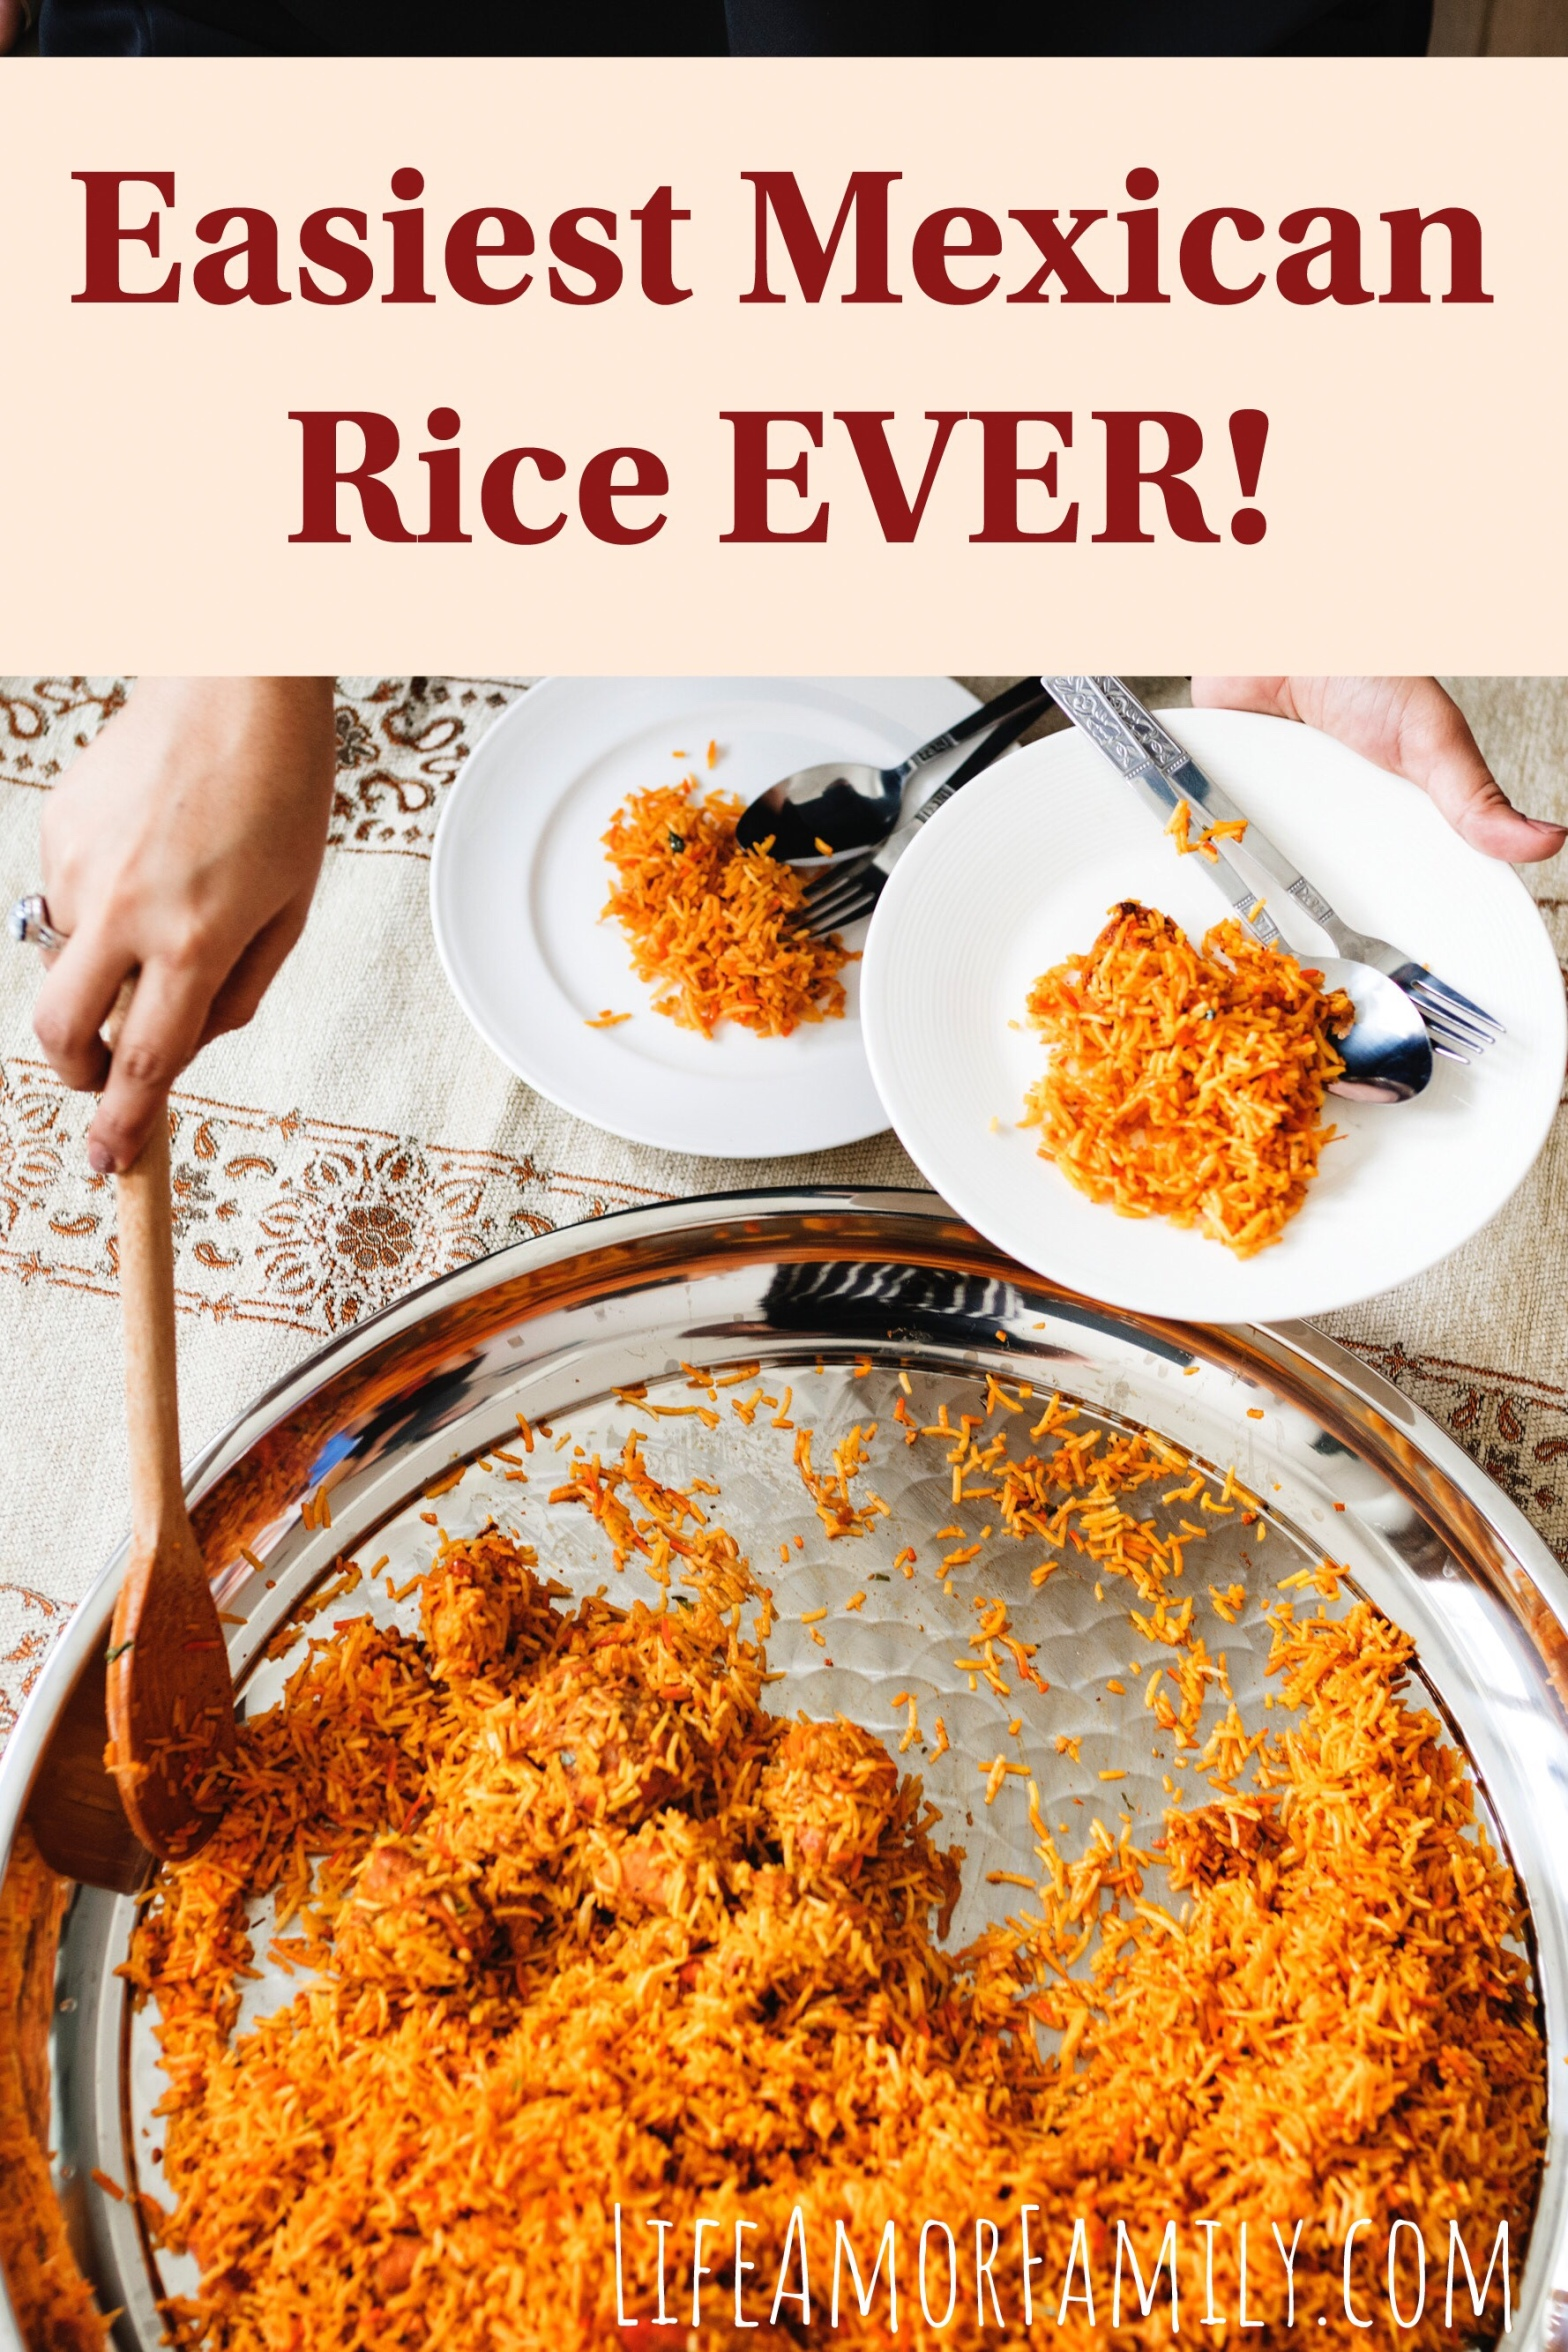 Life Amor Family's Easiest Mexican Rice EVER Featured Image